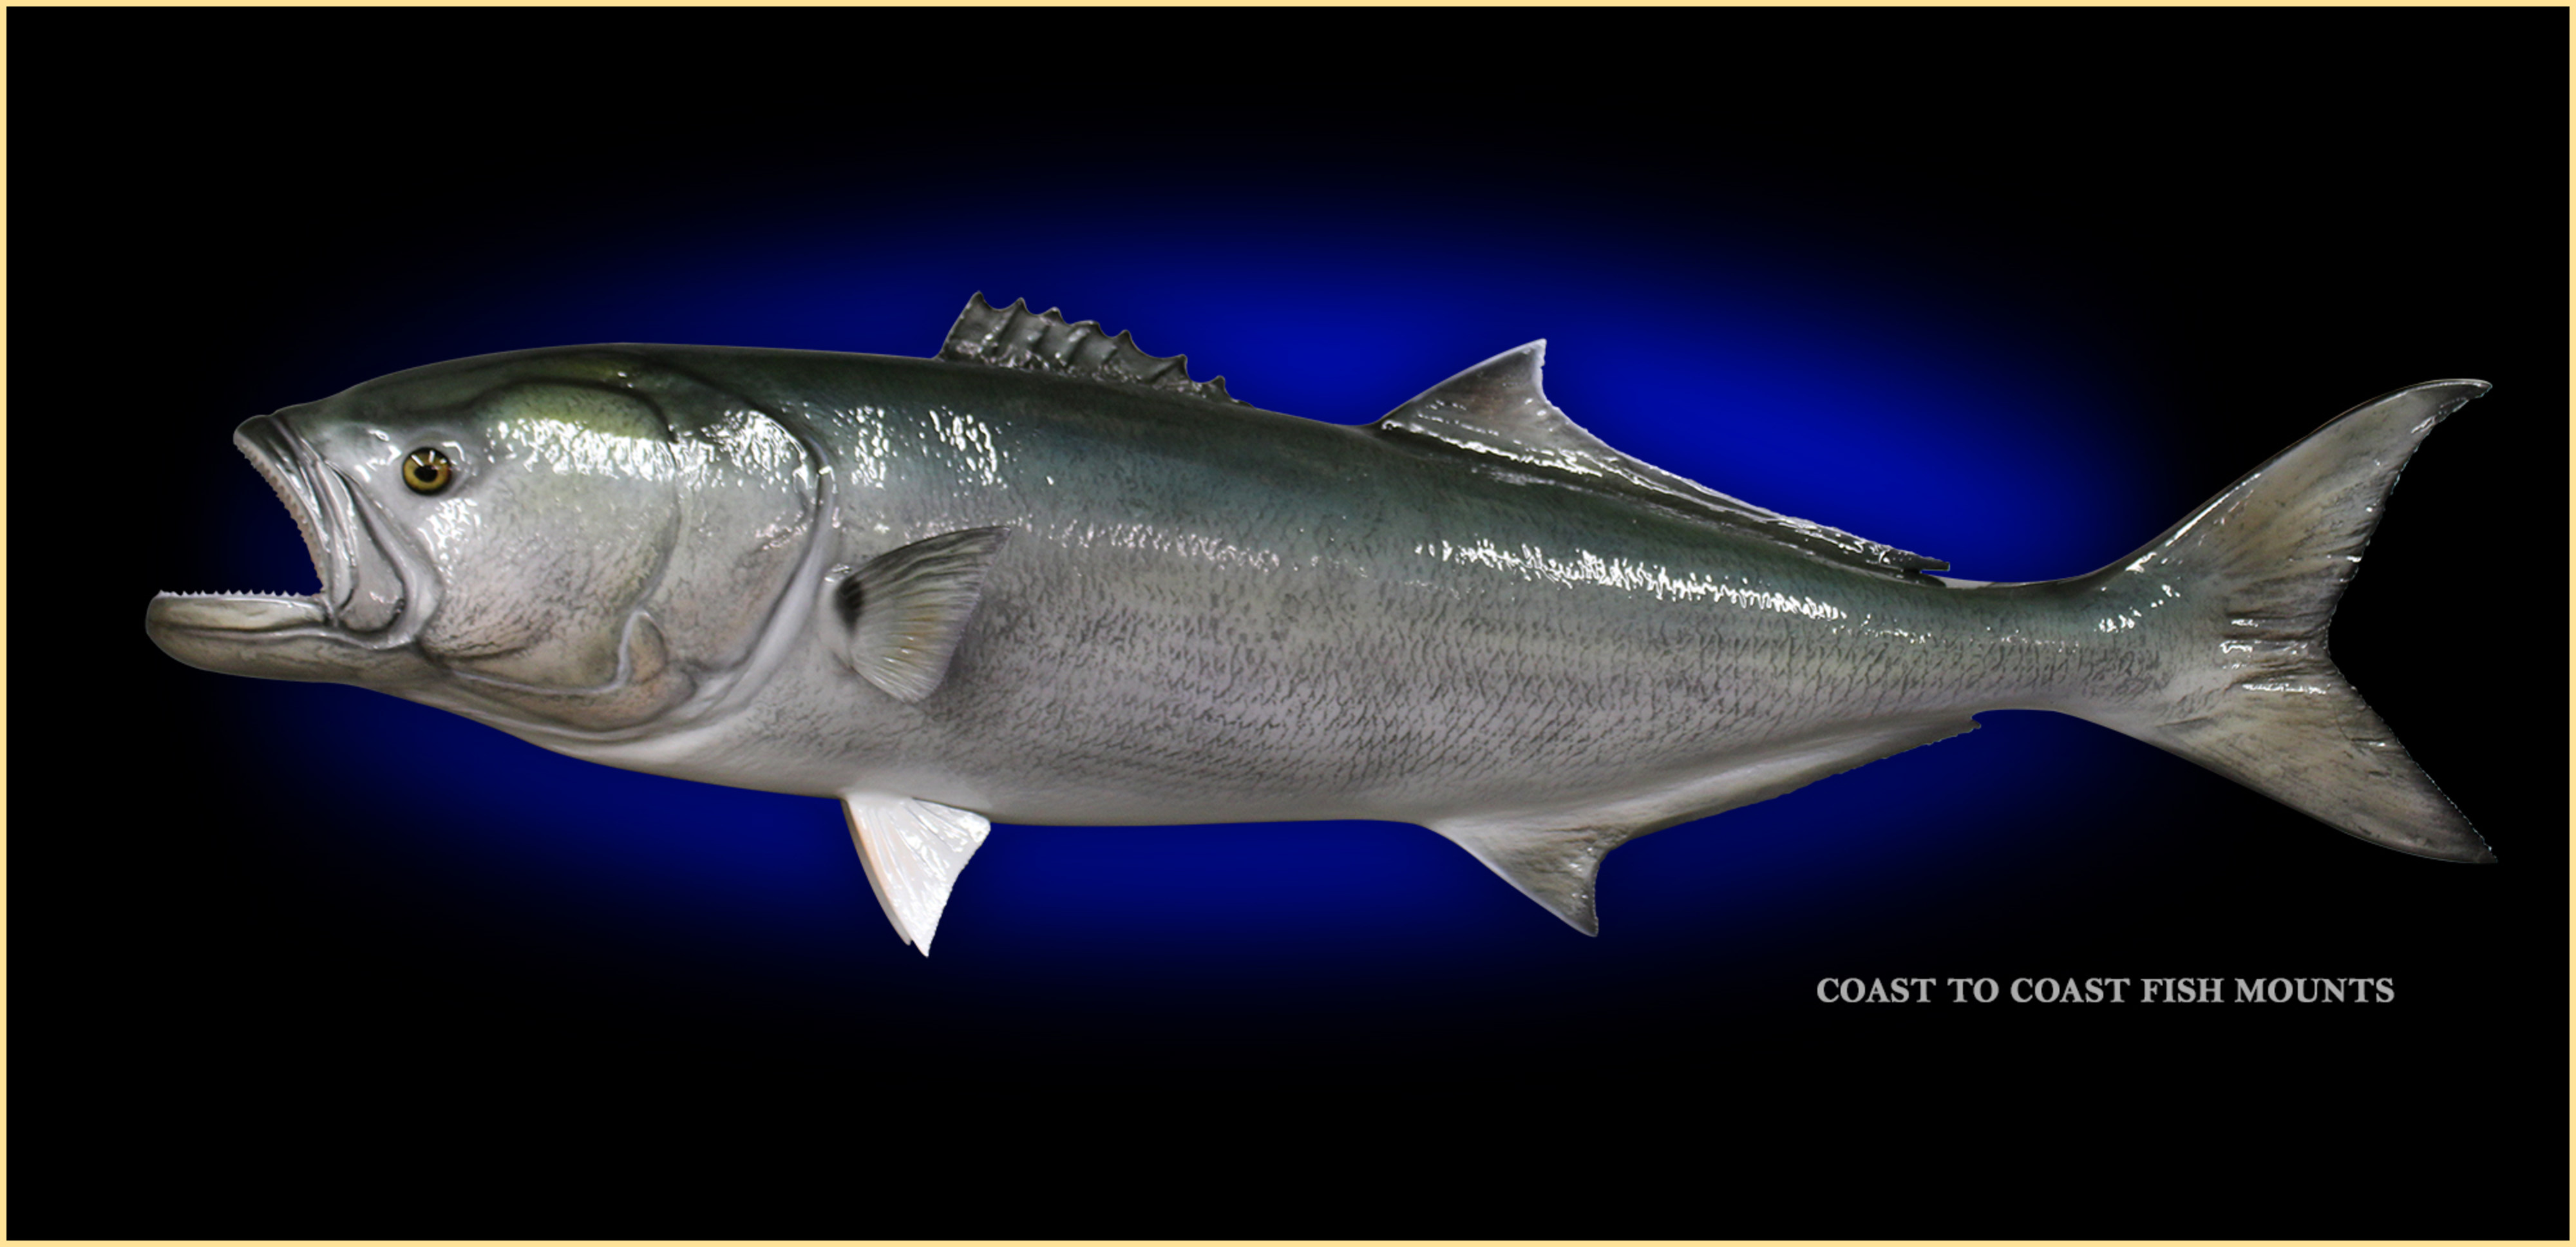 Bluefish fish mount and fish replicas coast to coast for Fish is fish